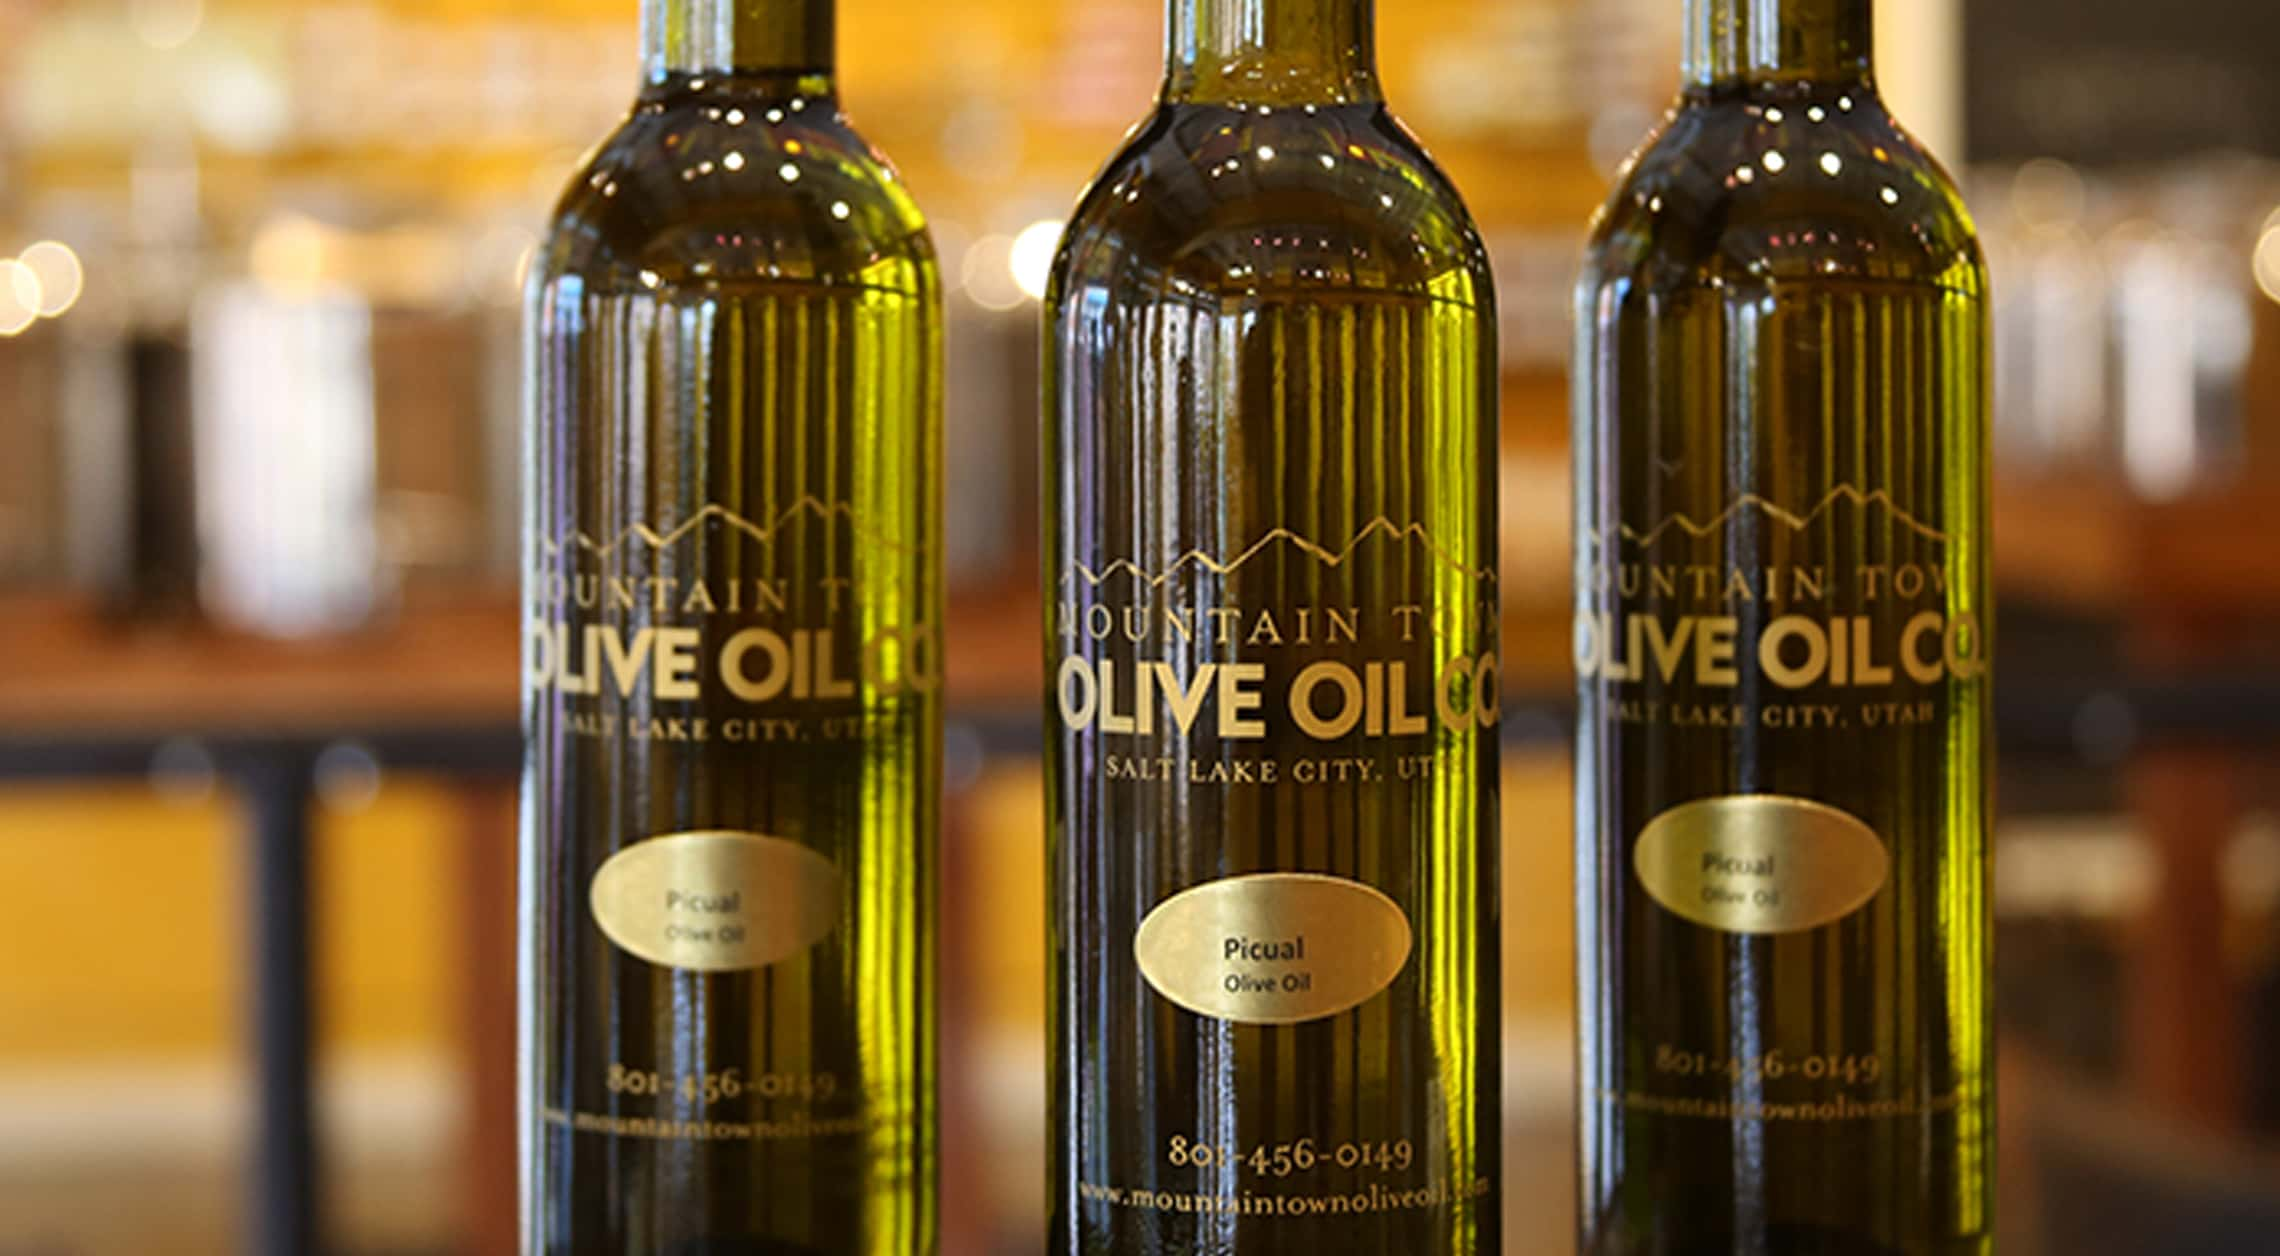 Meet the Merchant: Mountain Town Olive Oil